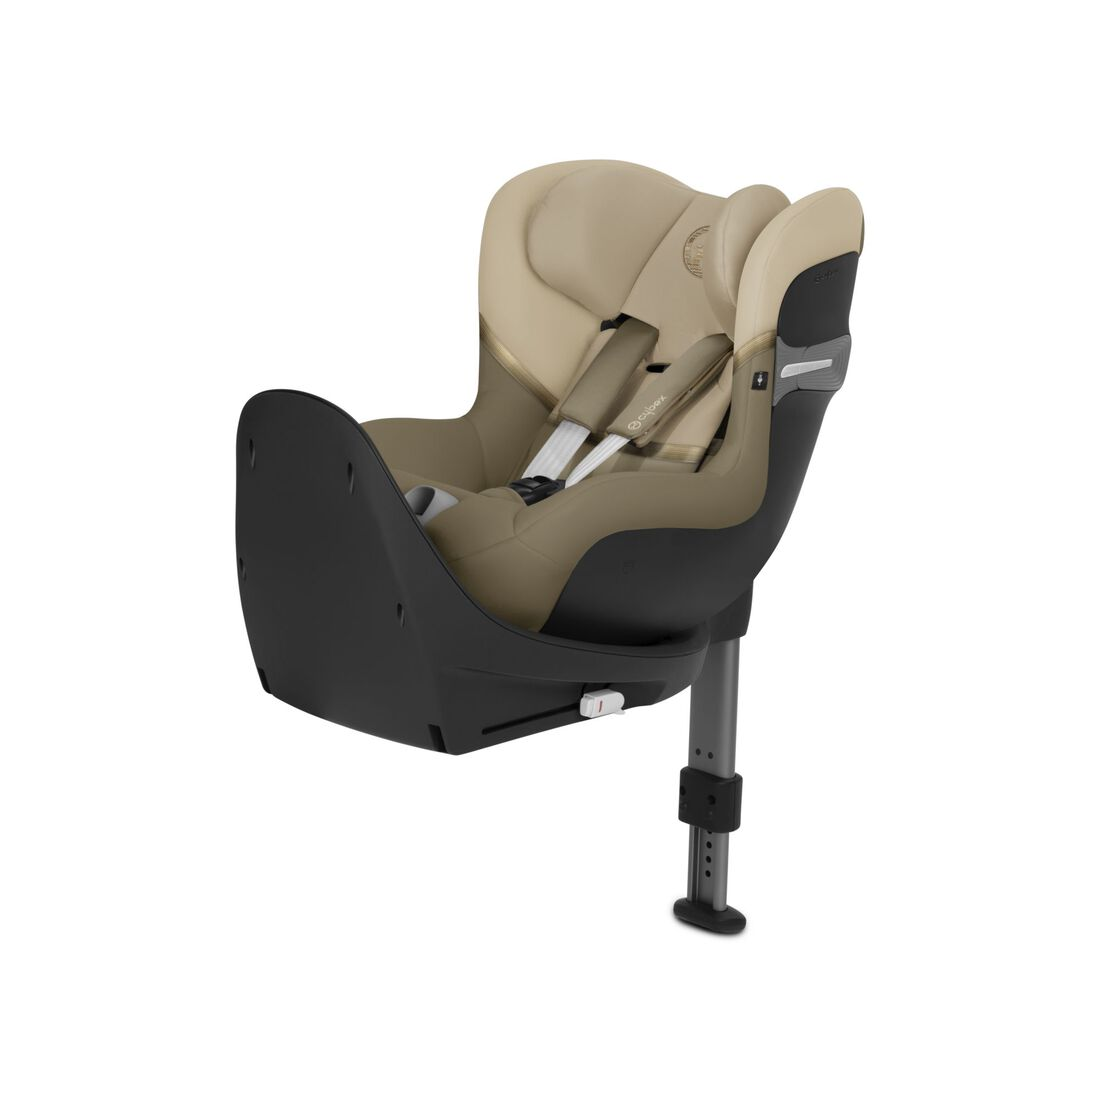 CYBEX Sirona S i-Size - Classic Beige in Classic Beige large image number 1